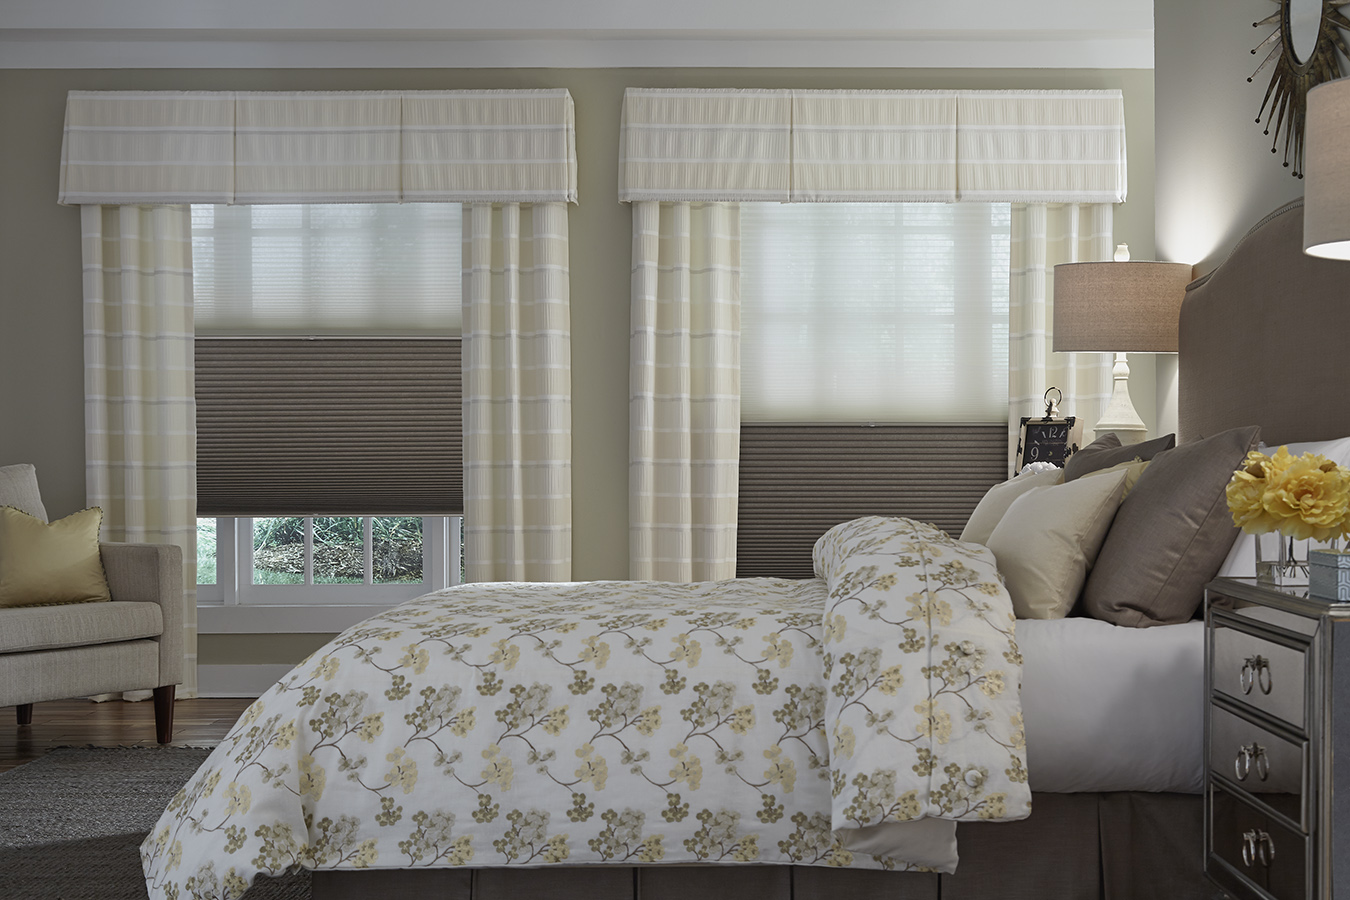 Duo Shade with valance and panels